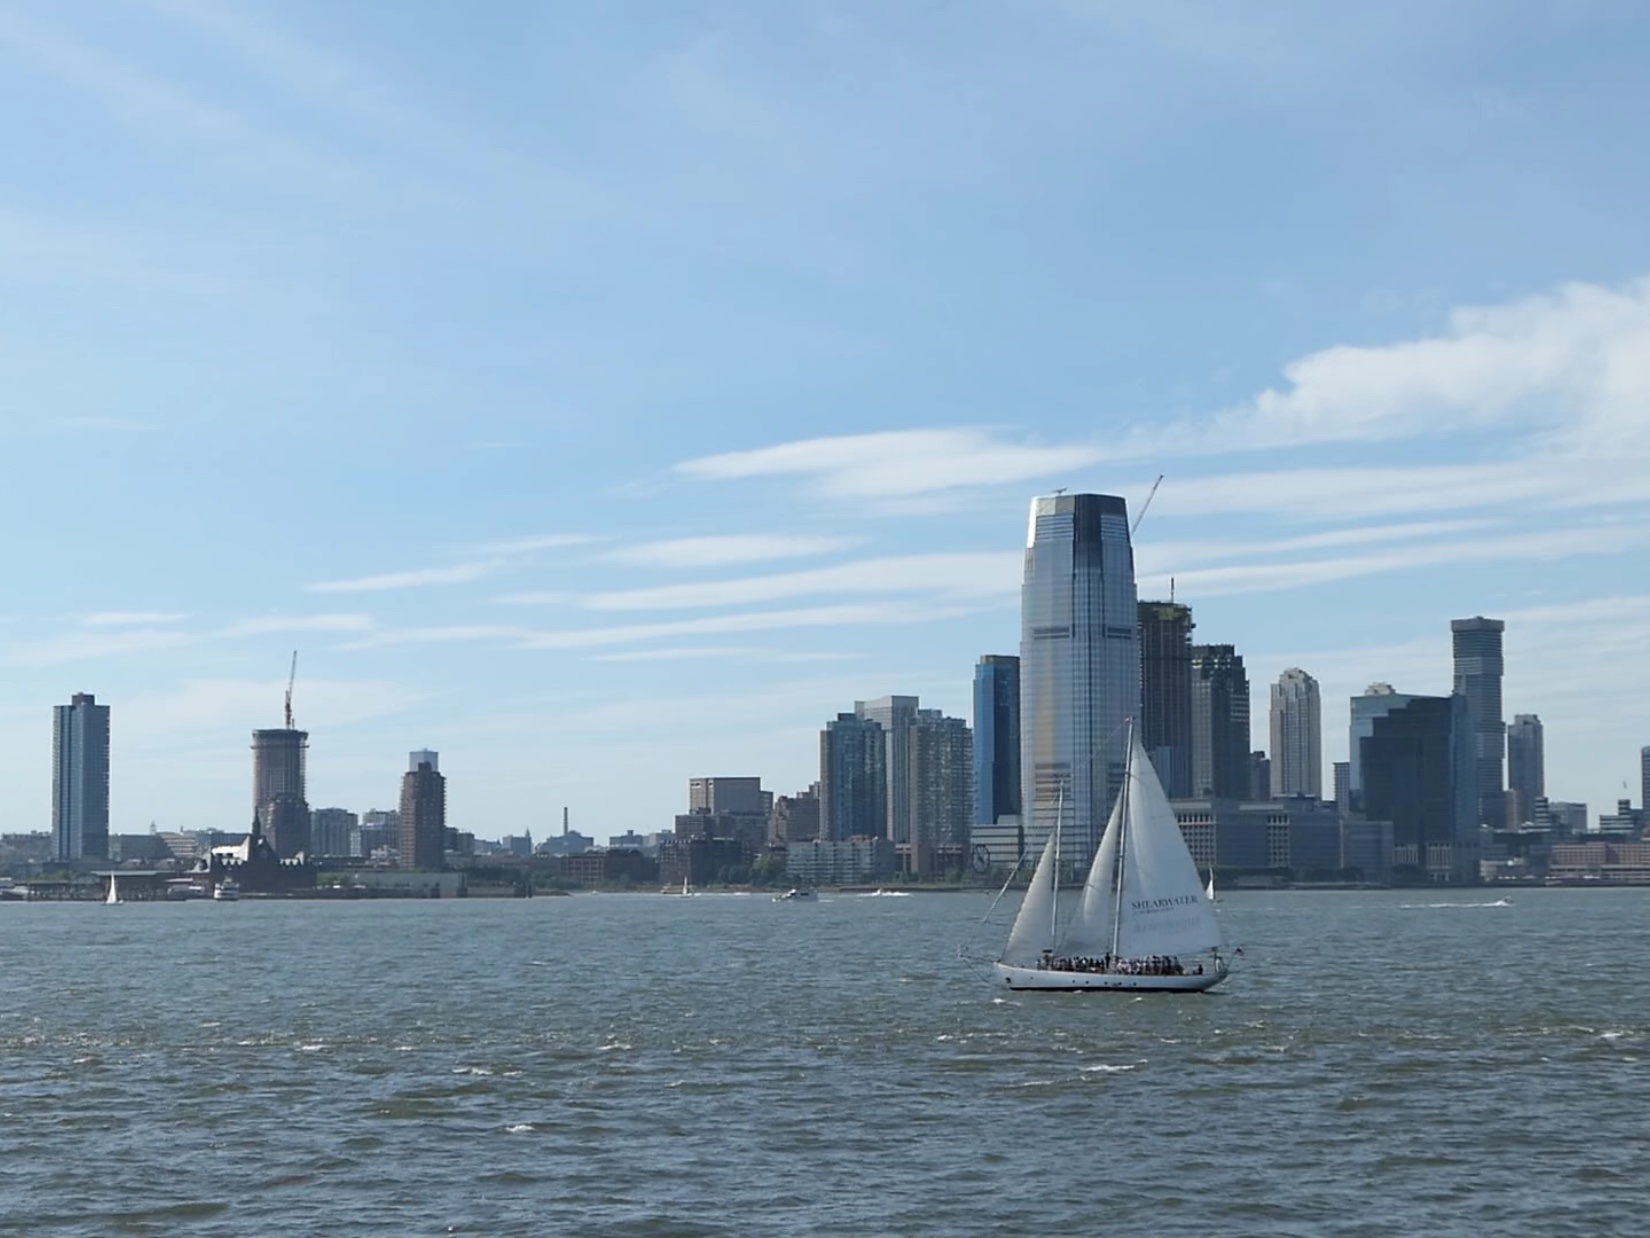 Buildings and Sailboats